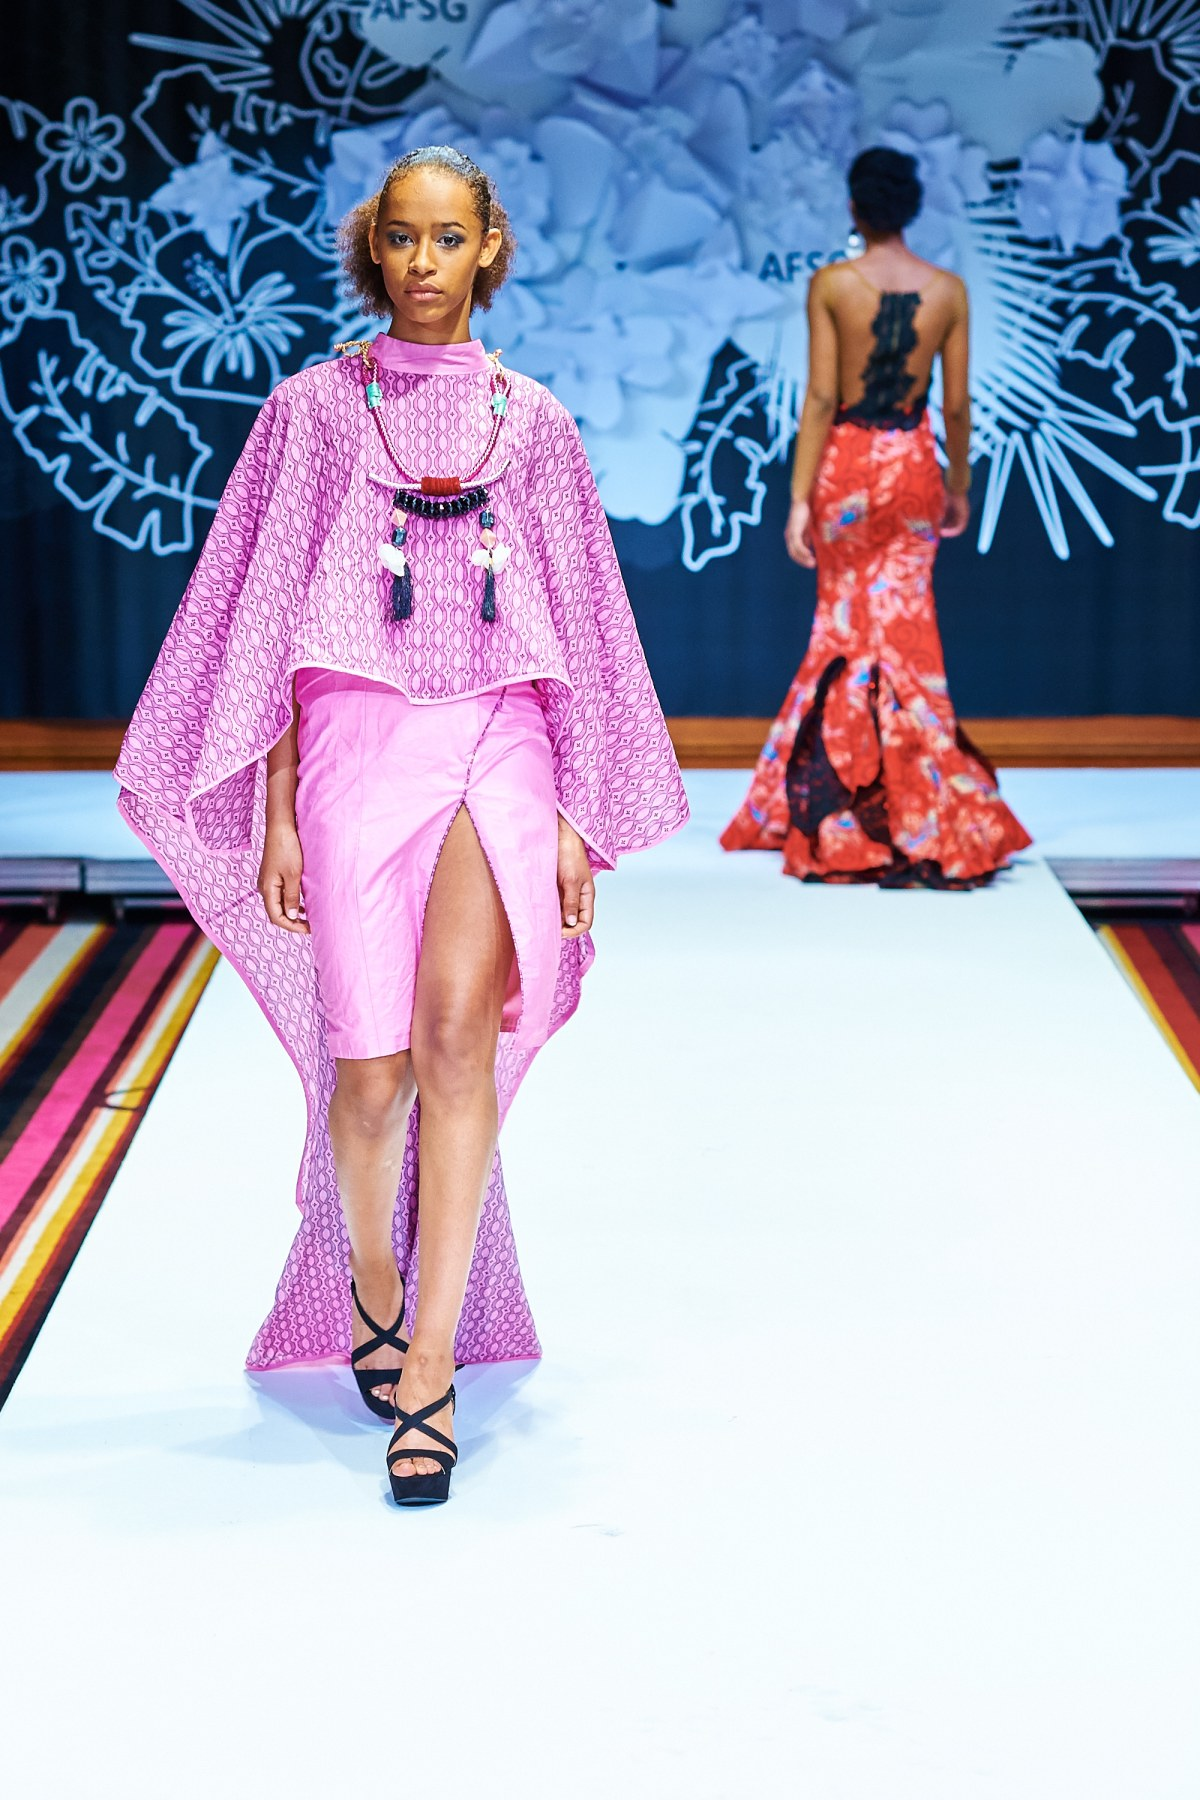 Challenges facing the fashion industry in south africa Welcome to TLC South Africa TLC Marketing Worldwide